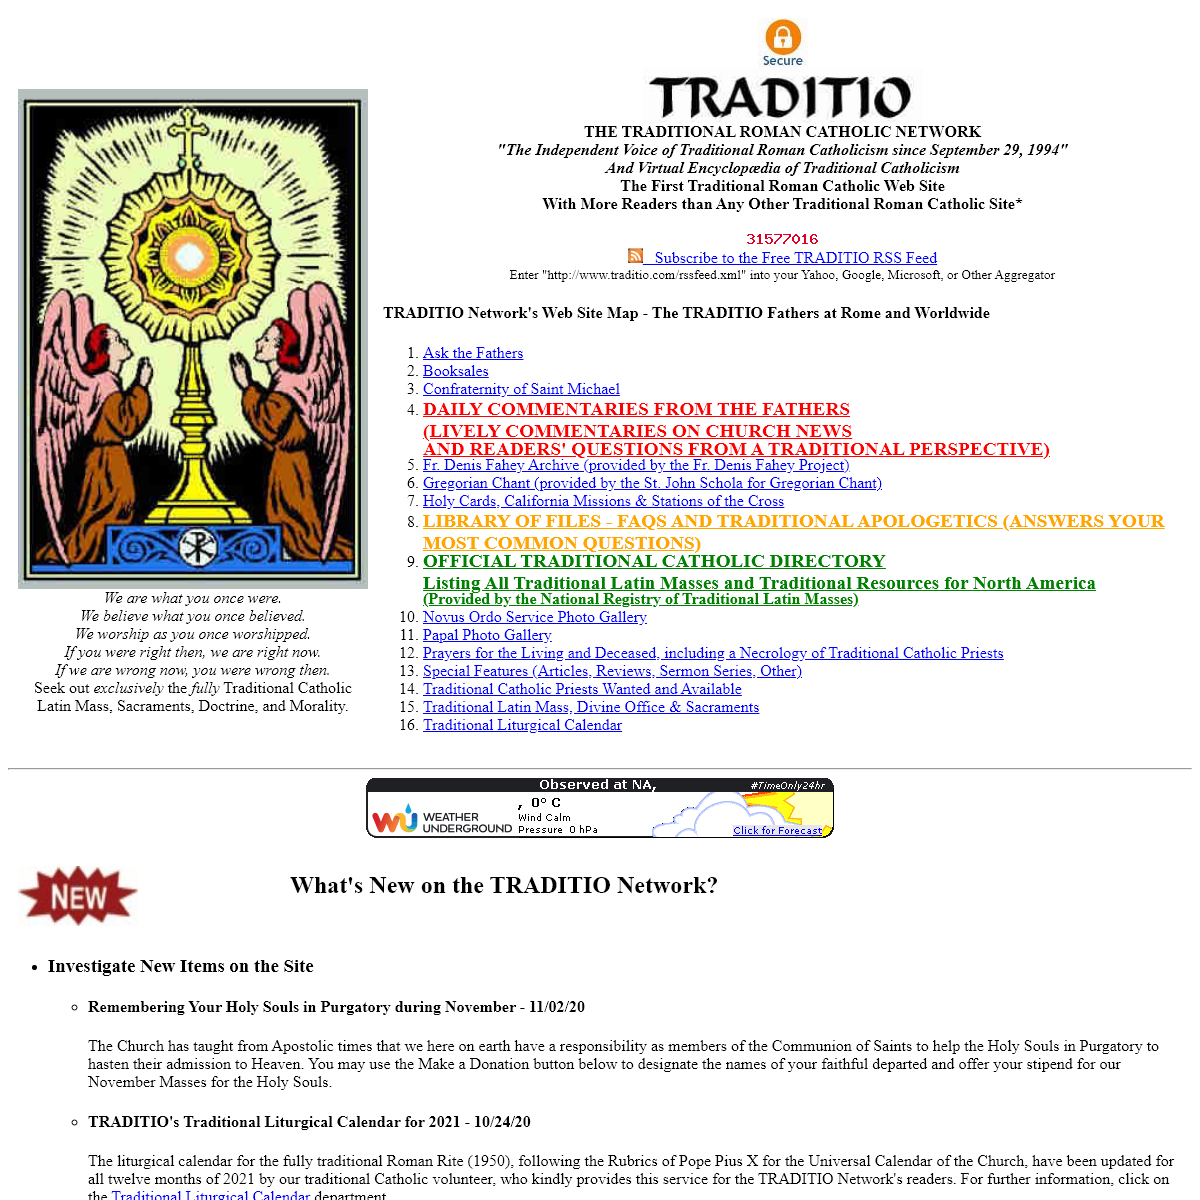 TRADITIO Traditional Roman Catholic Network, including the Official Catholic Directory of Traditional Latin Masses